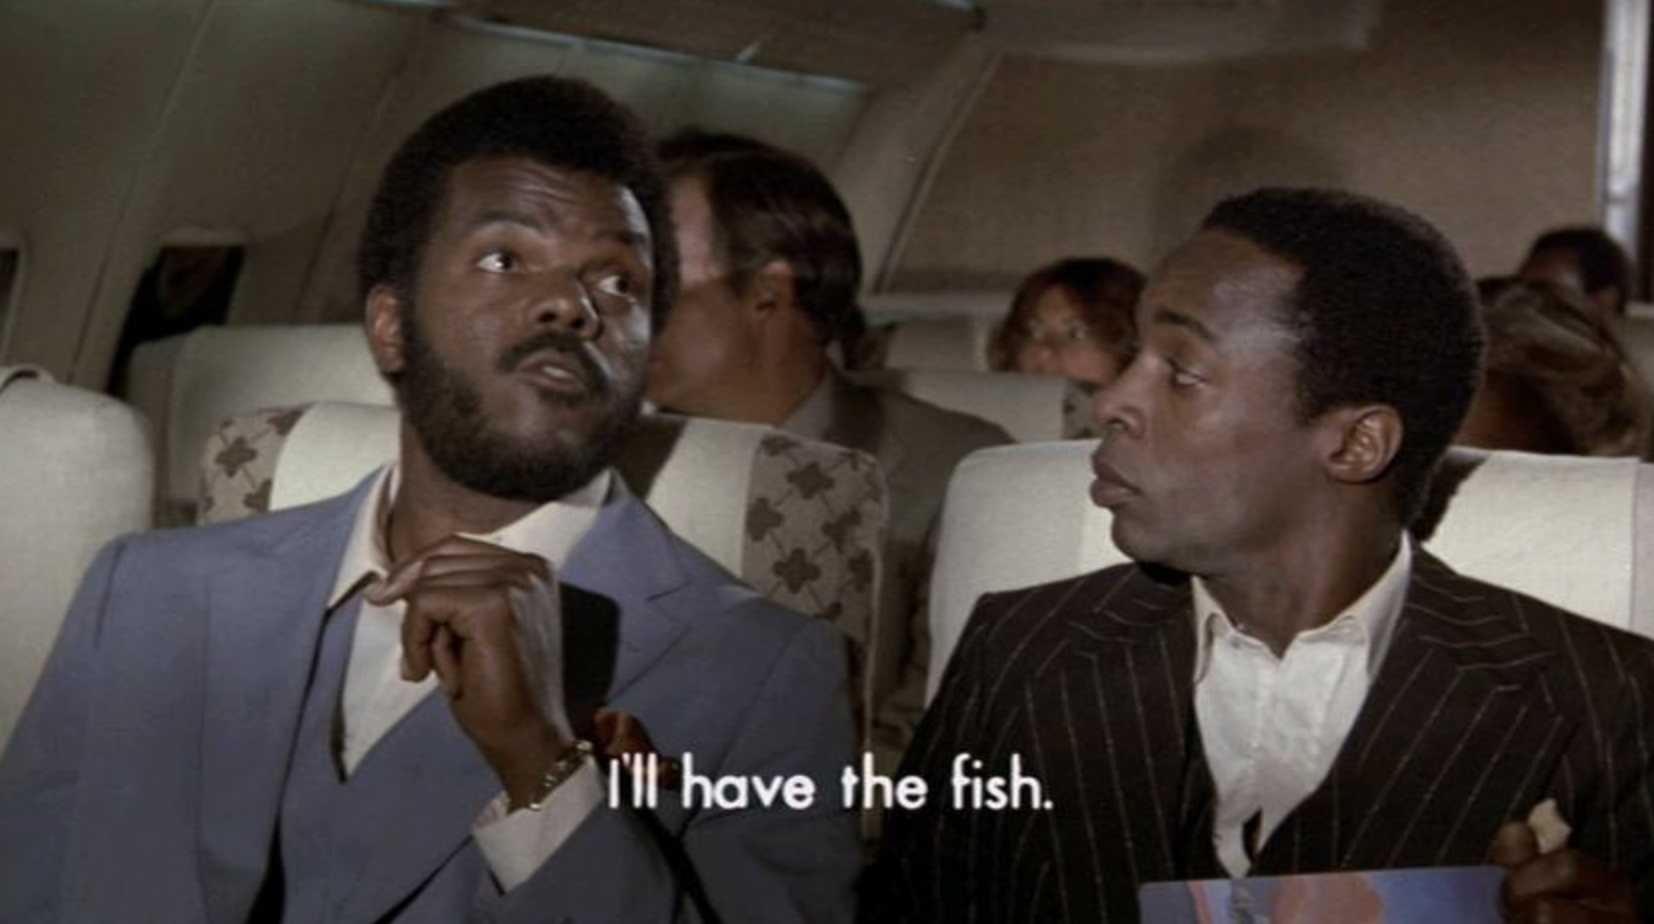 """Two men ordering their meals on a flight in the movie """"Airplane!"""""""